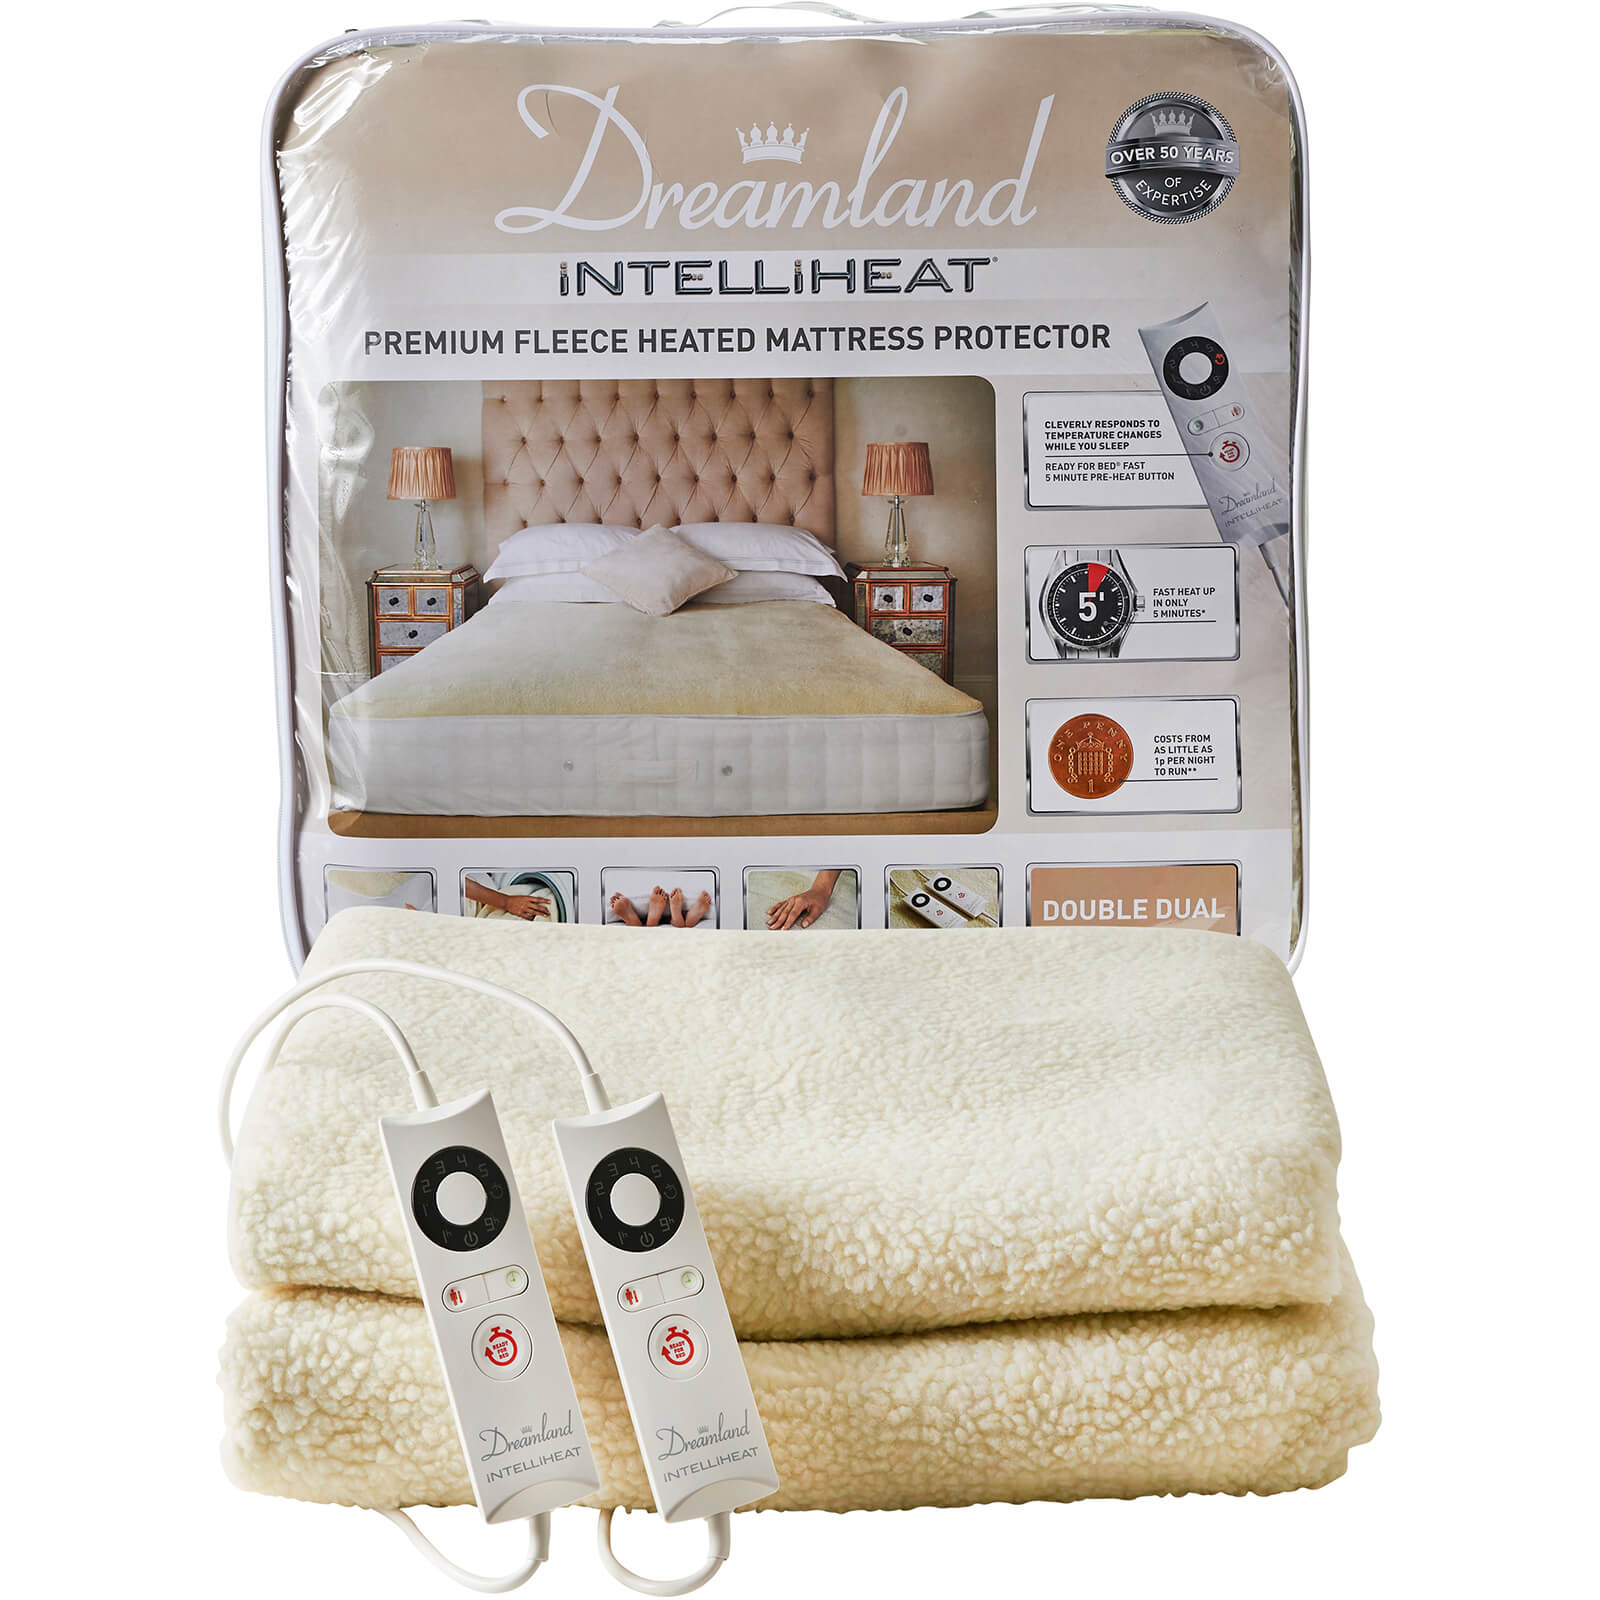 Dreamland Sleepwell Intelliheat Heated